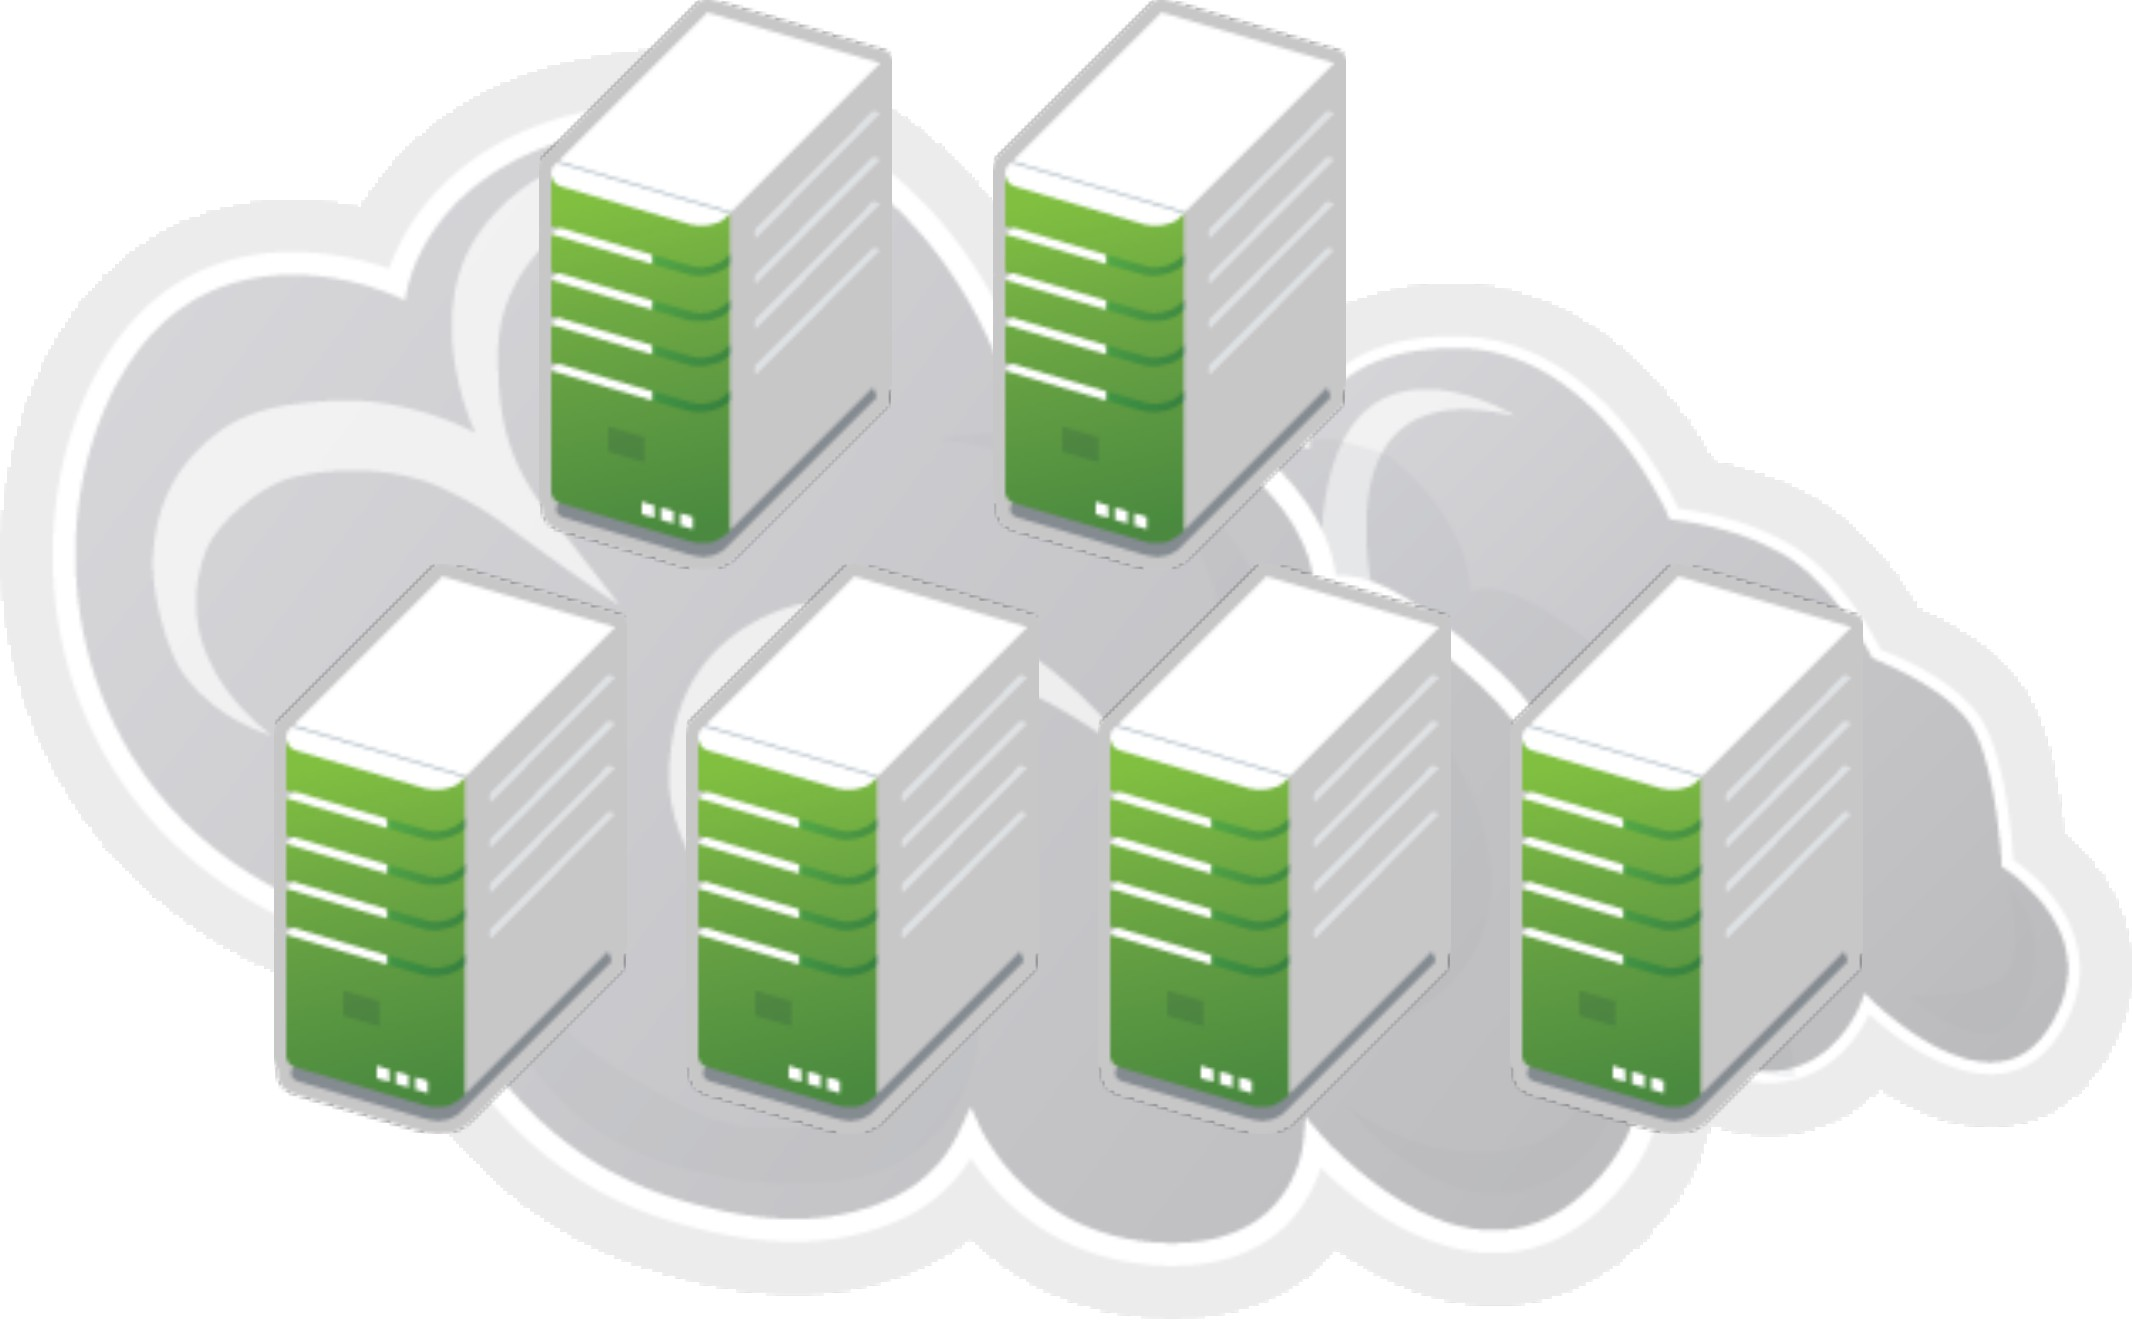 SUSE Cloud SUSE Cloud is an open source software solution based on the OpenStack and Crowbar